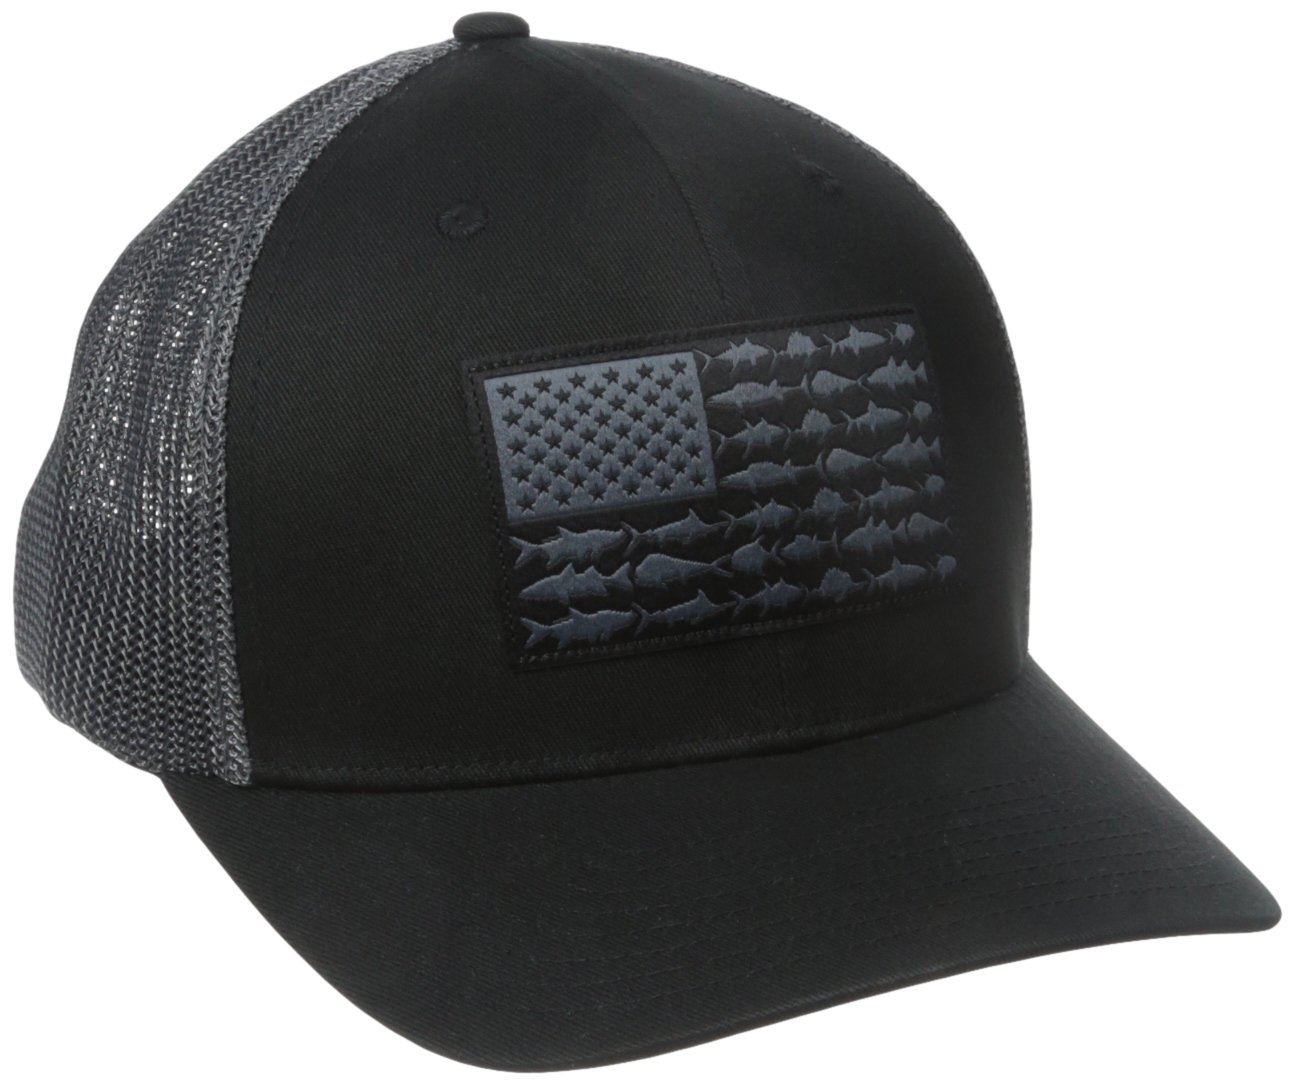 Columbia Men's PFG Mesh Ball Cap, Large/X-Large, Black/Fish Flag